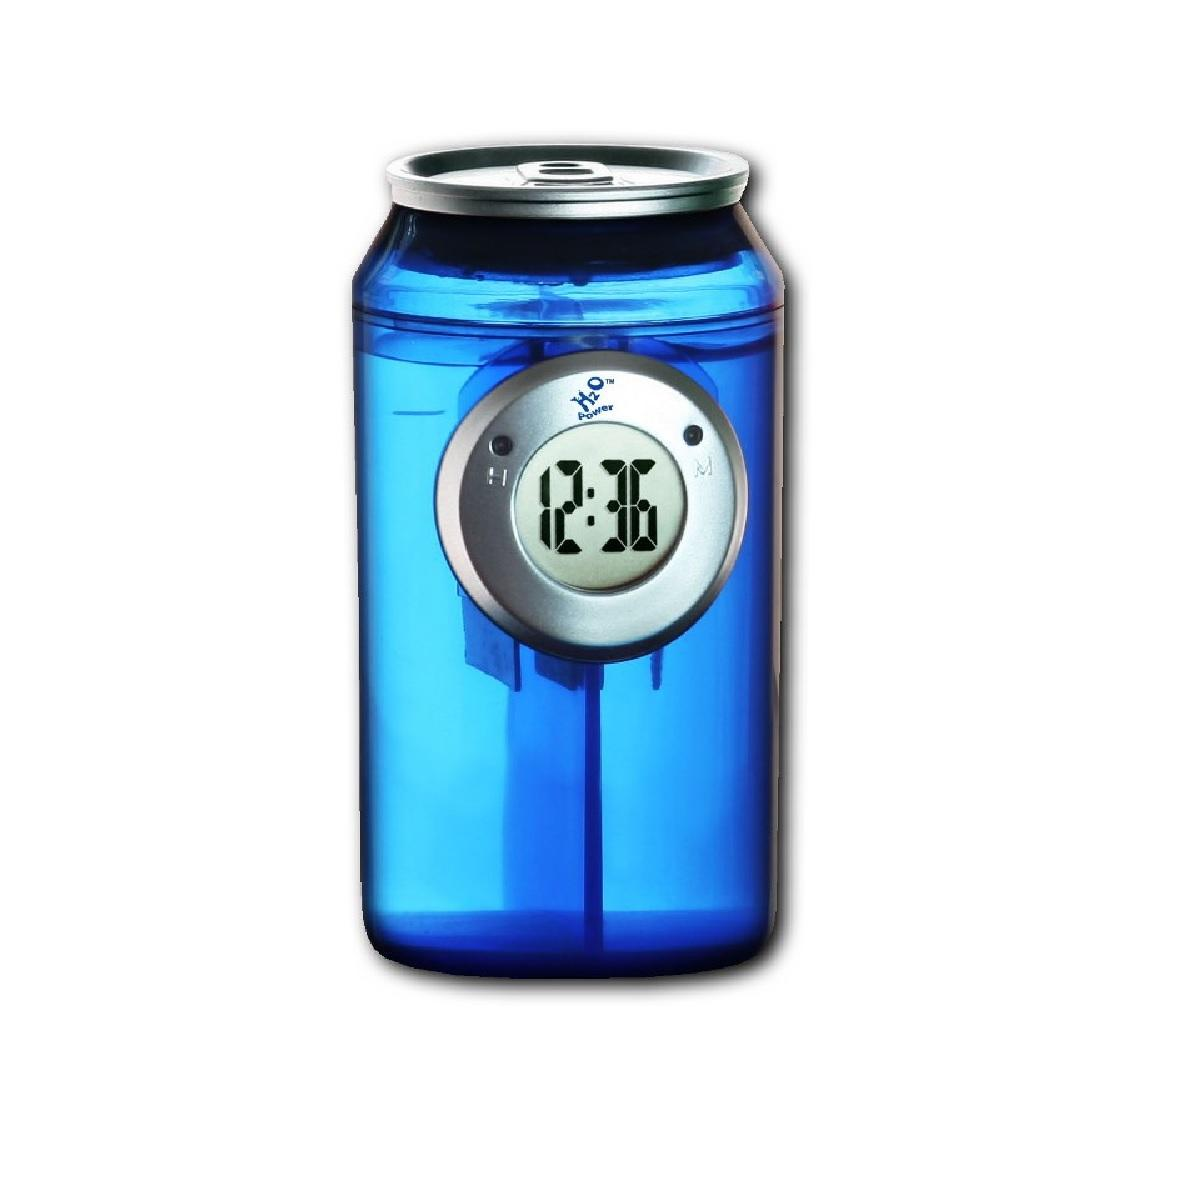 Picture of the H2o Blue can clock